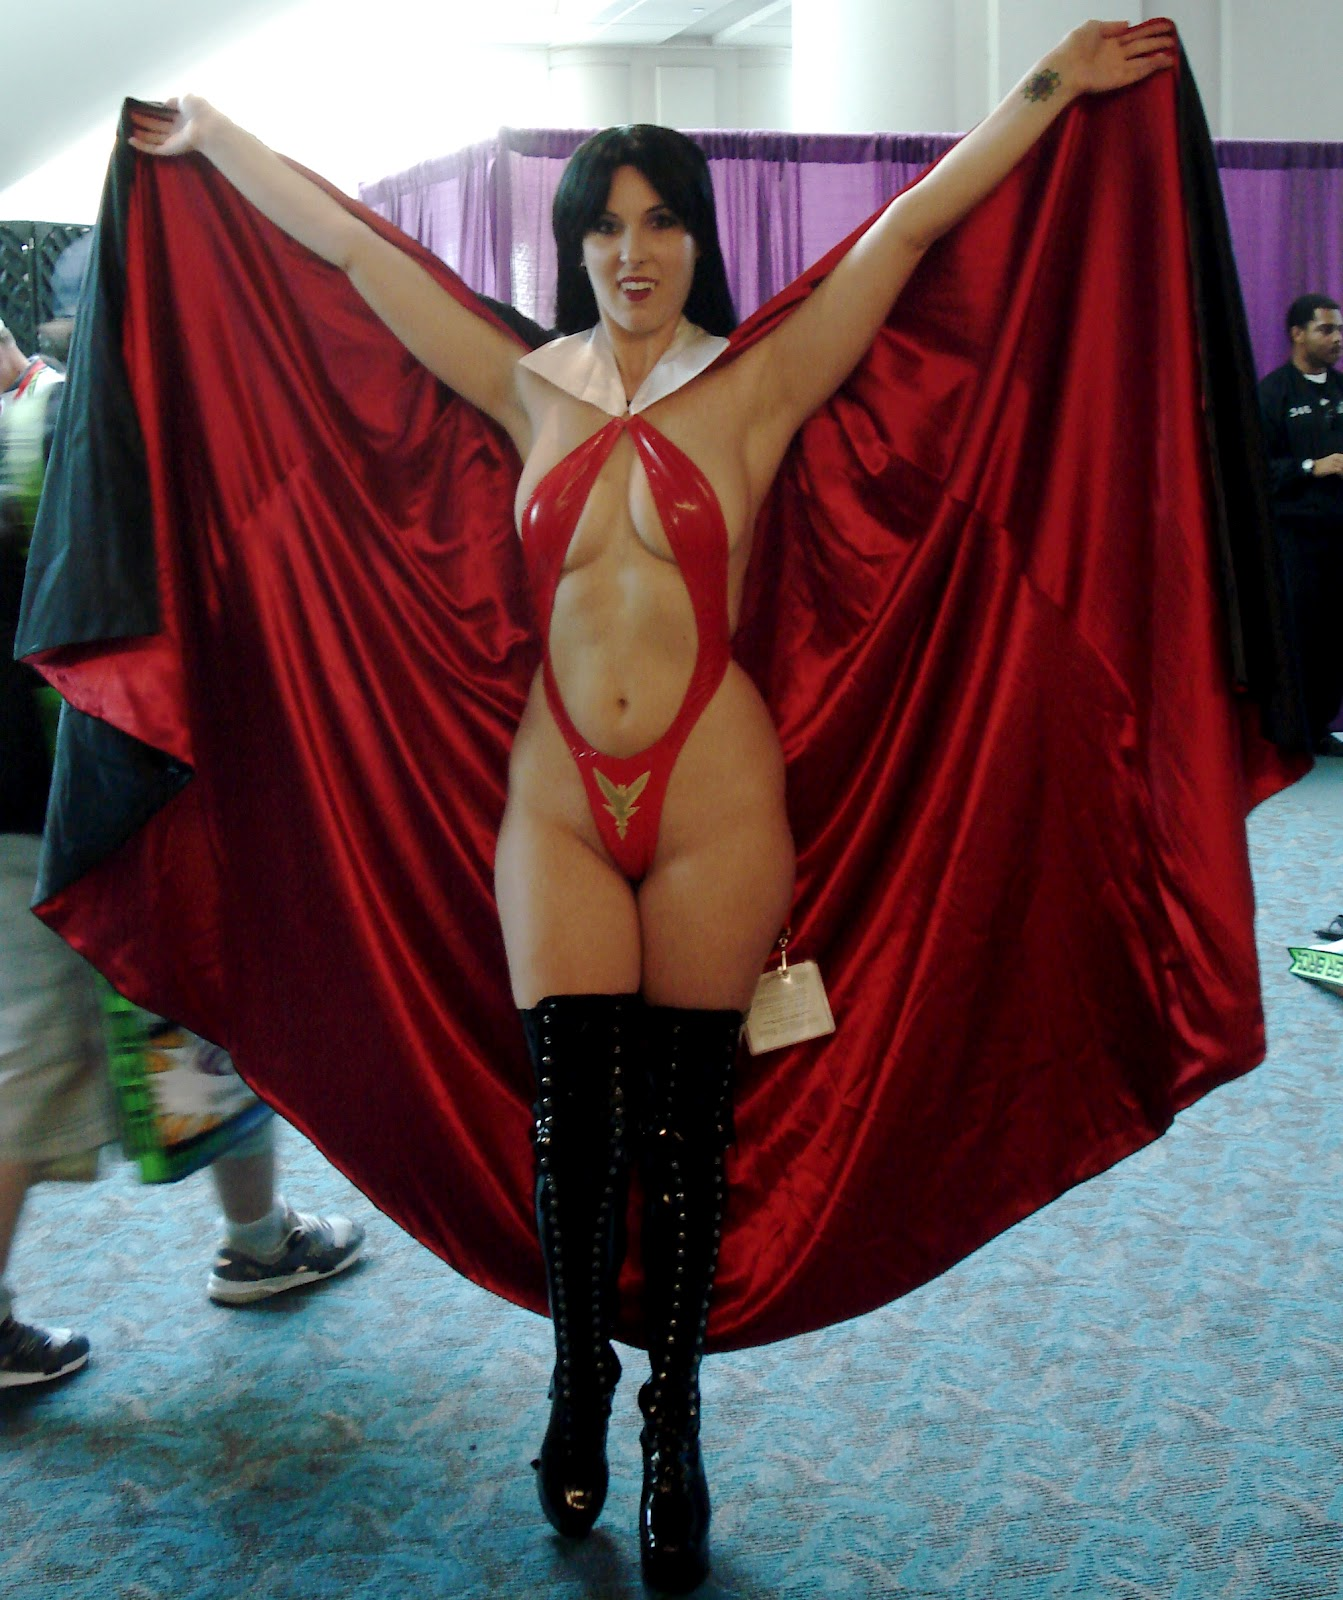 Topless vampirella exposed scenes